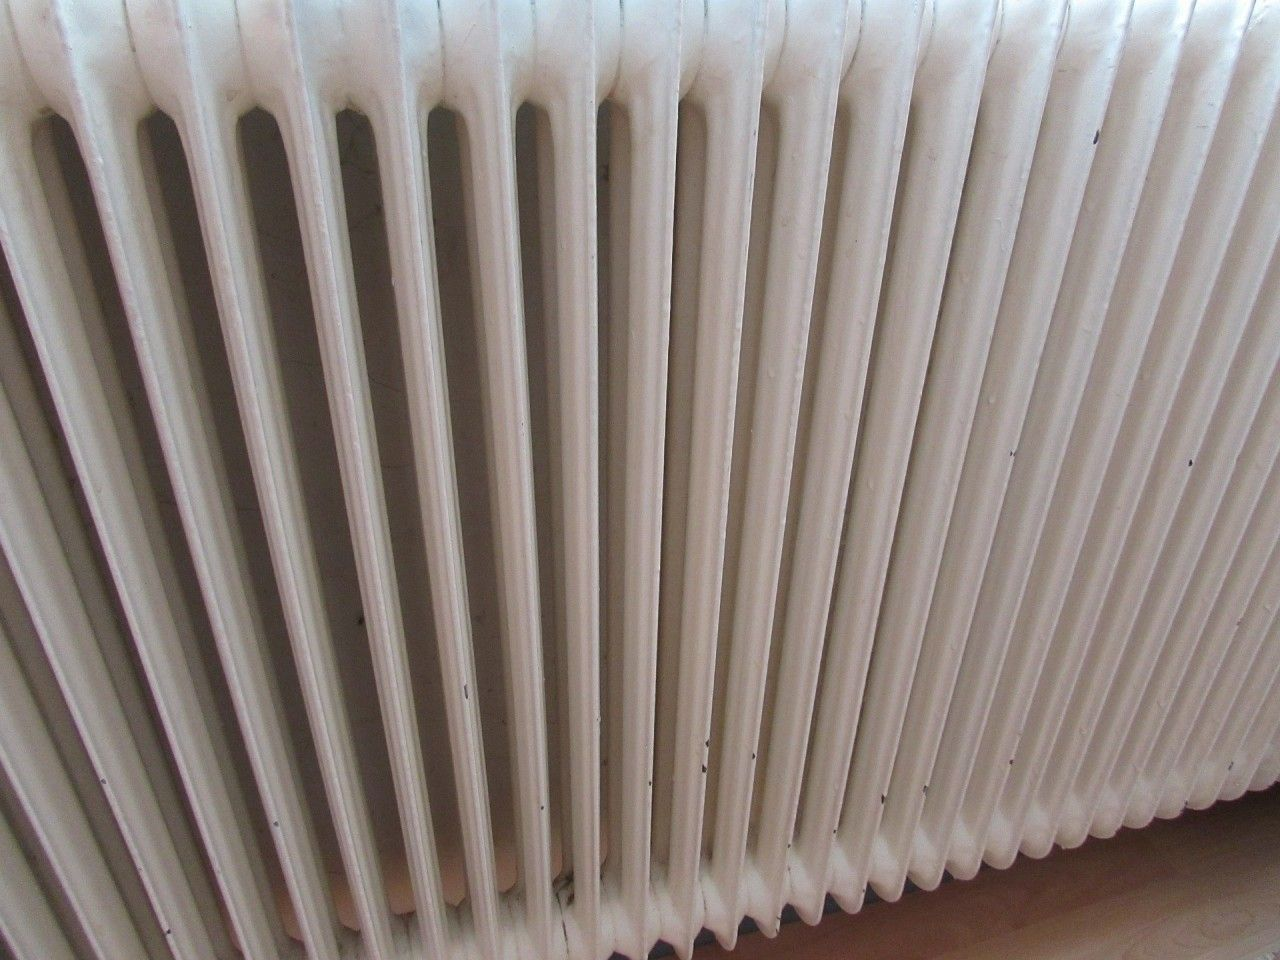 Best Heating System Forced Air vs. Hot Water vs. Electric